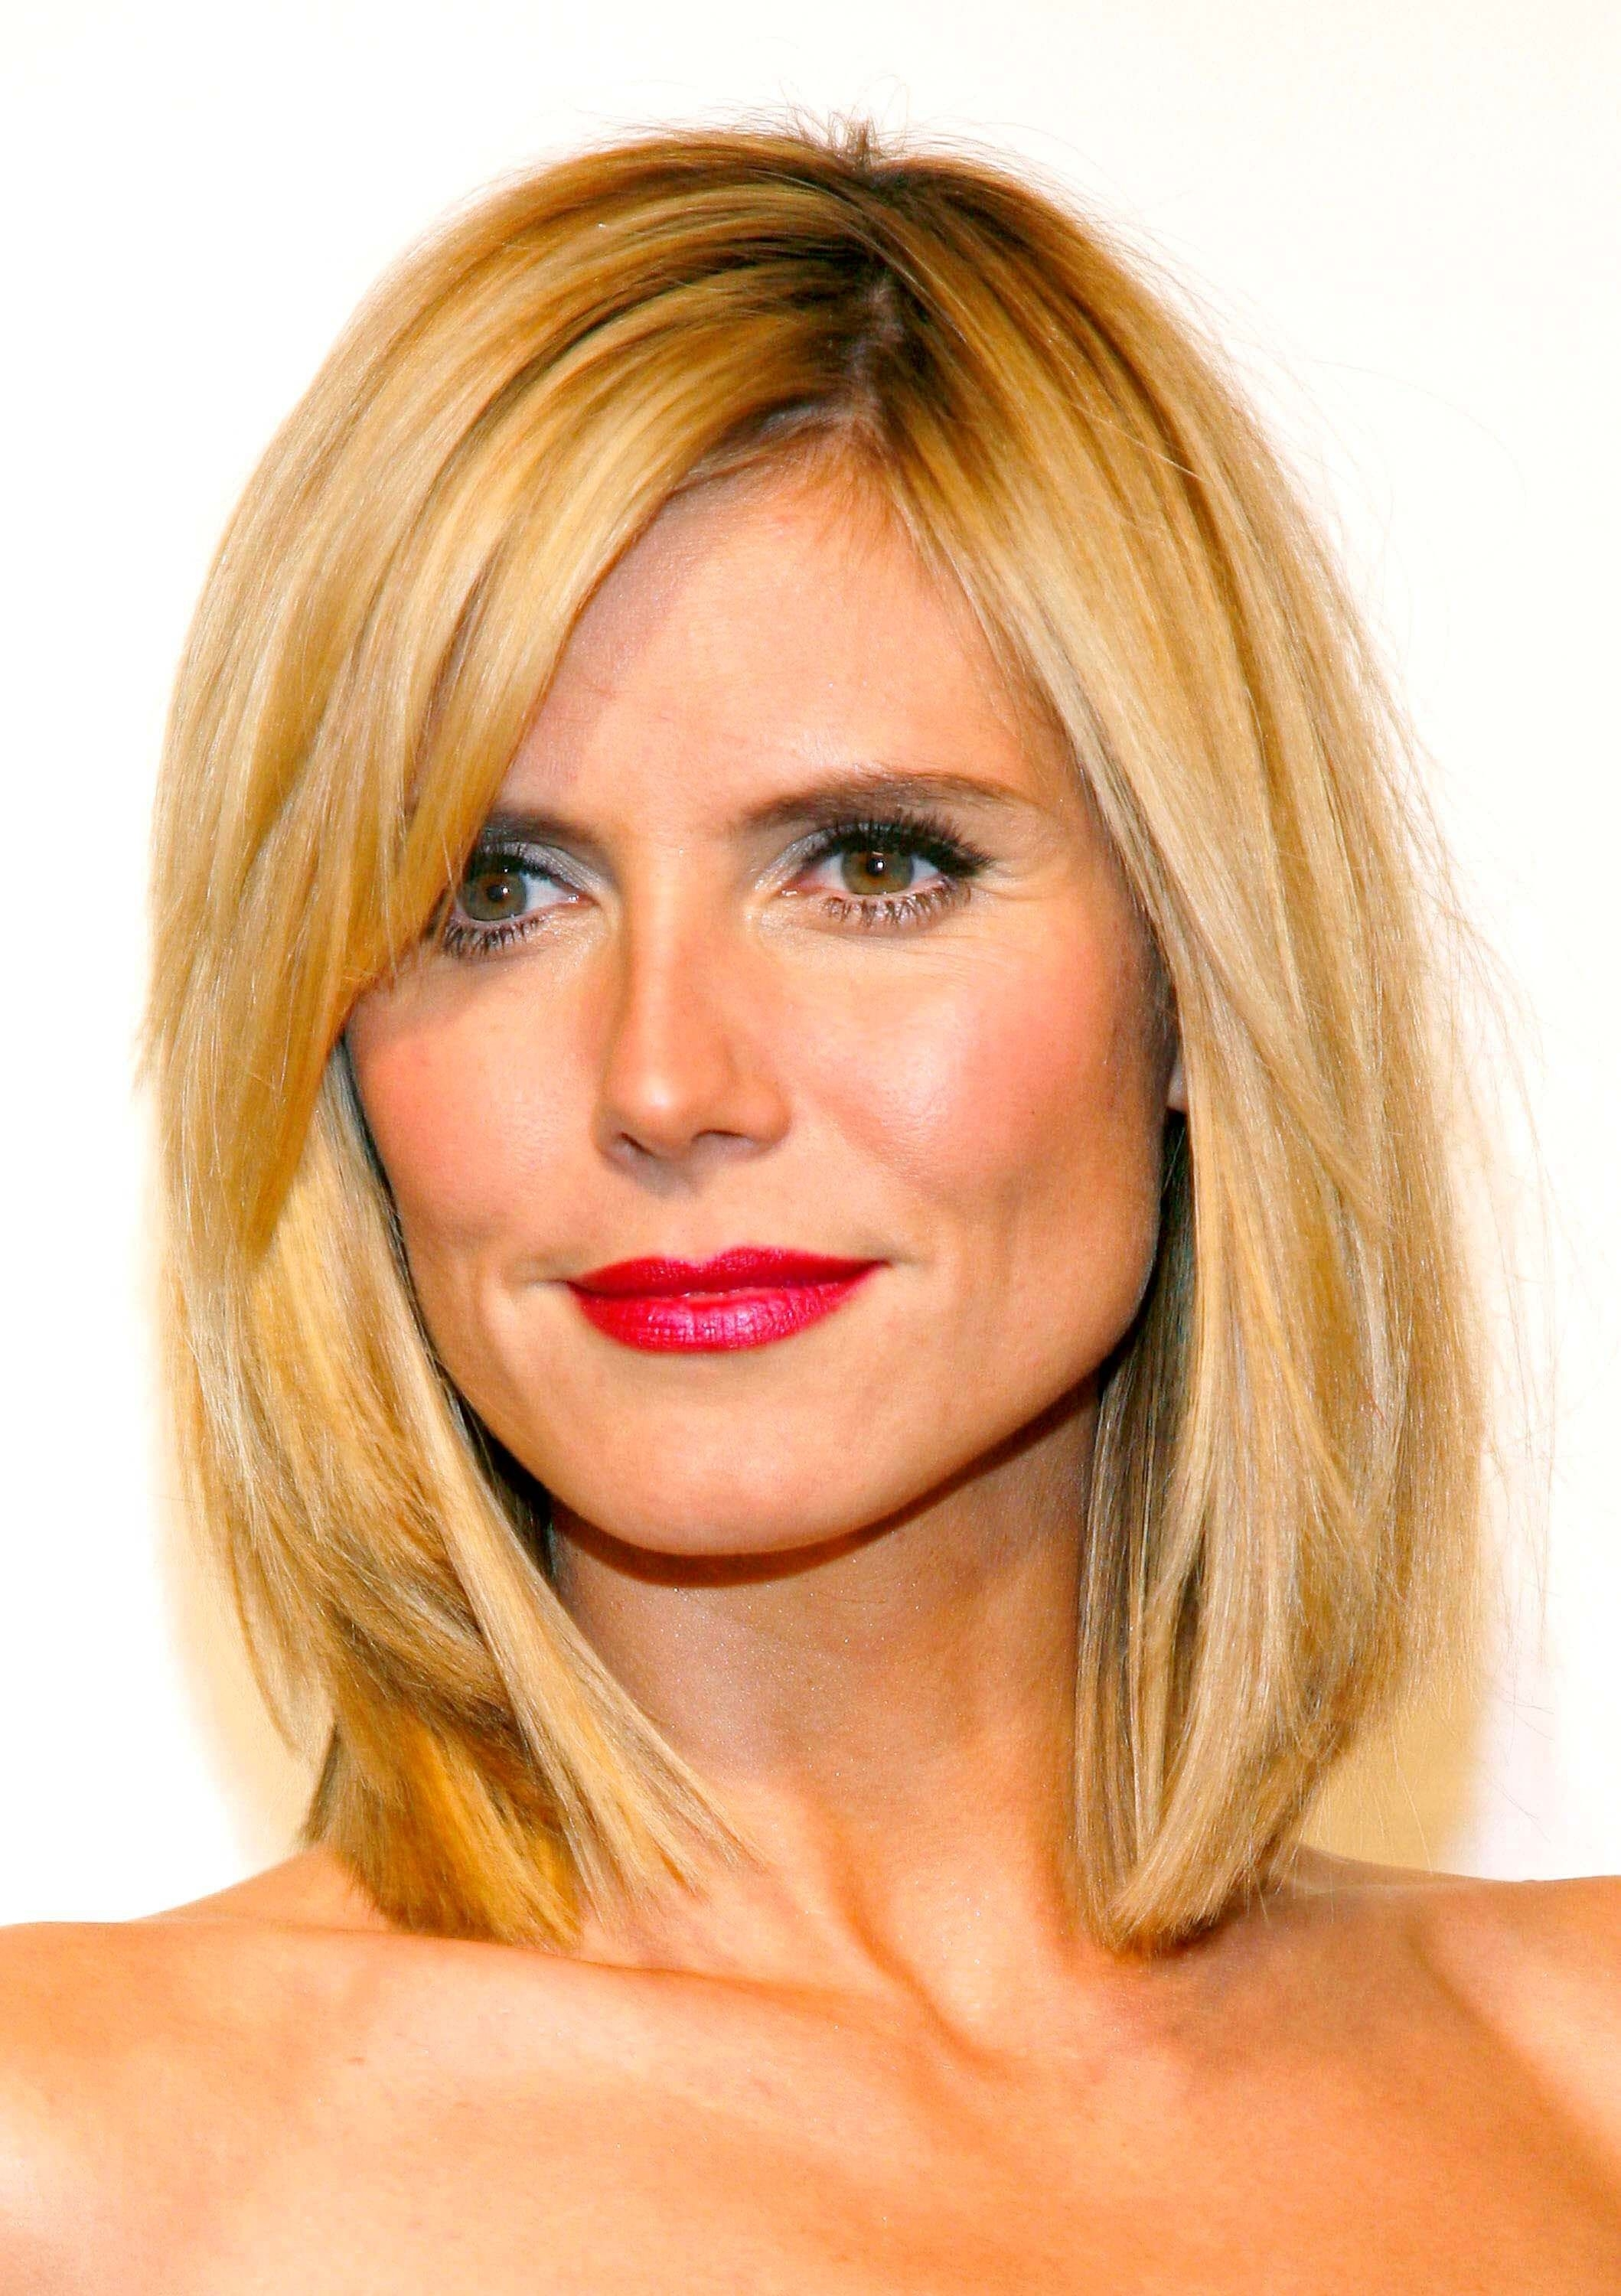 Struggling To Find Good Short Hairstyles For Square Faces? Here's throughout Best Haircut For Square Face Thin Hair